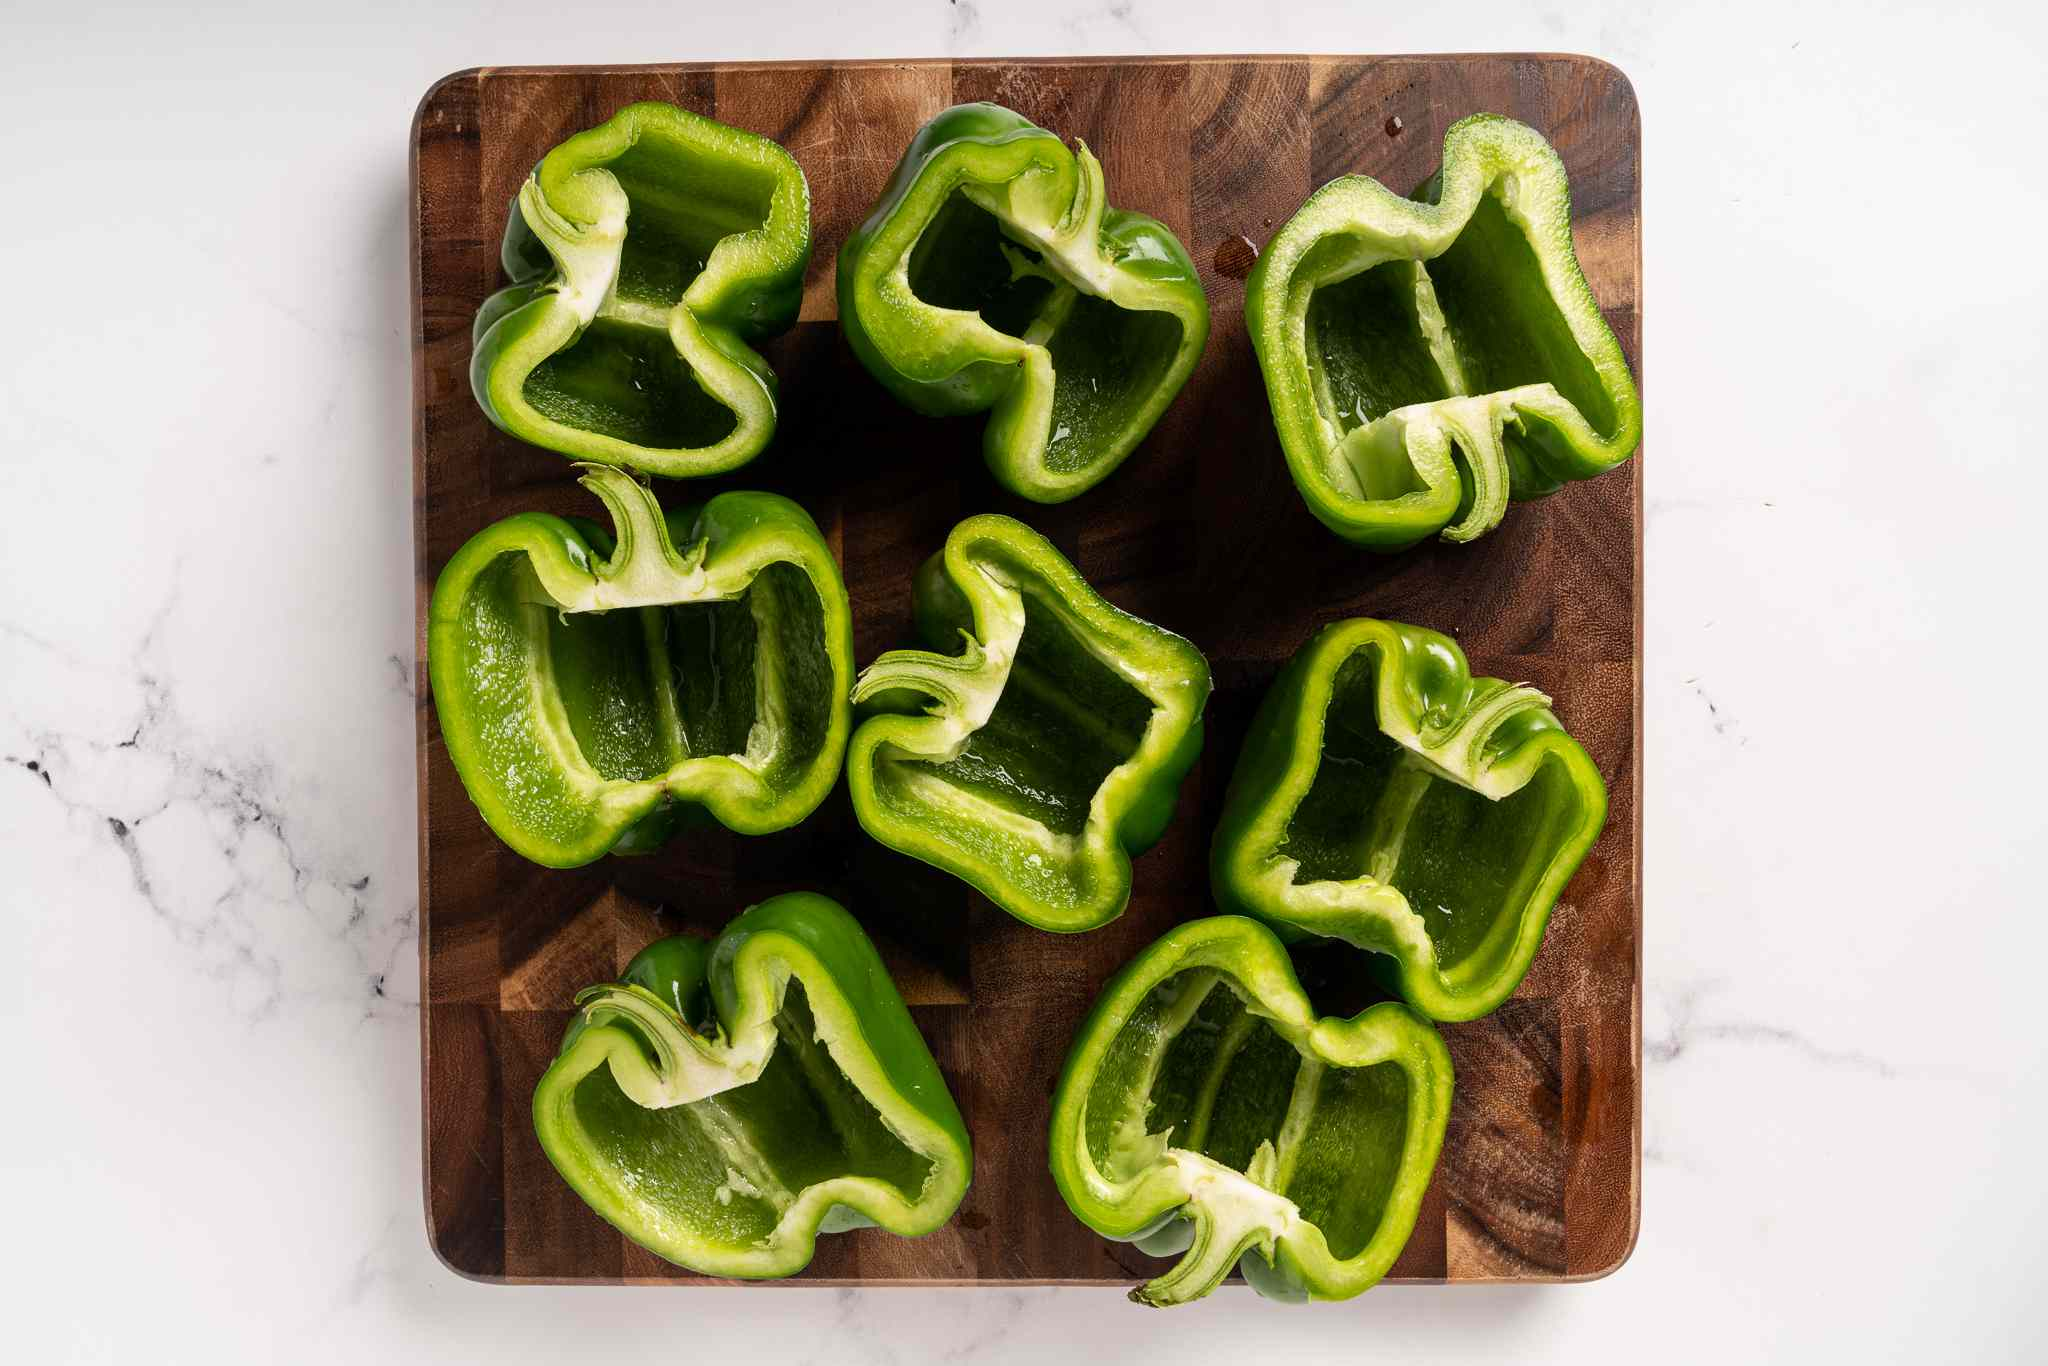 Cut four of the peppers in half lengthwise